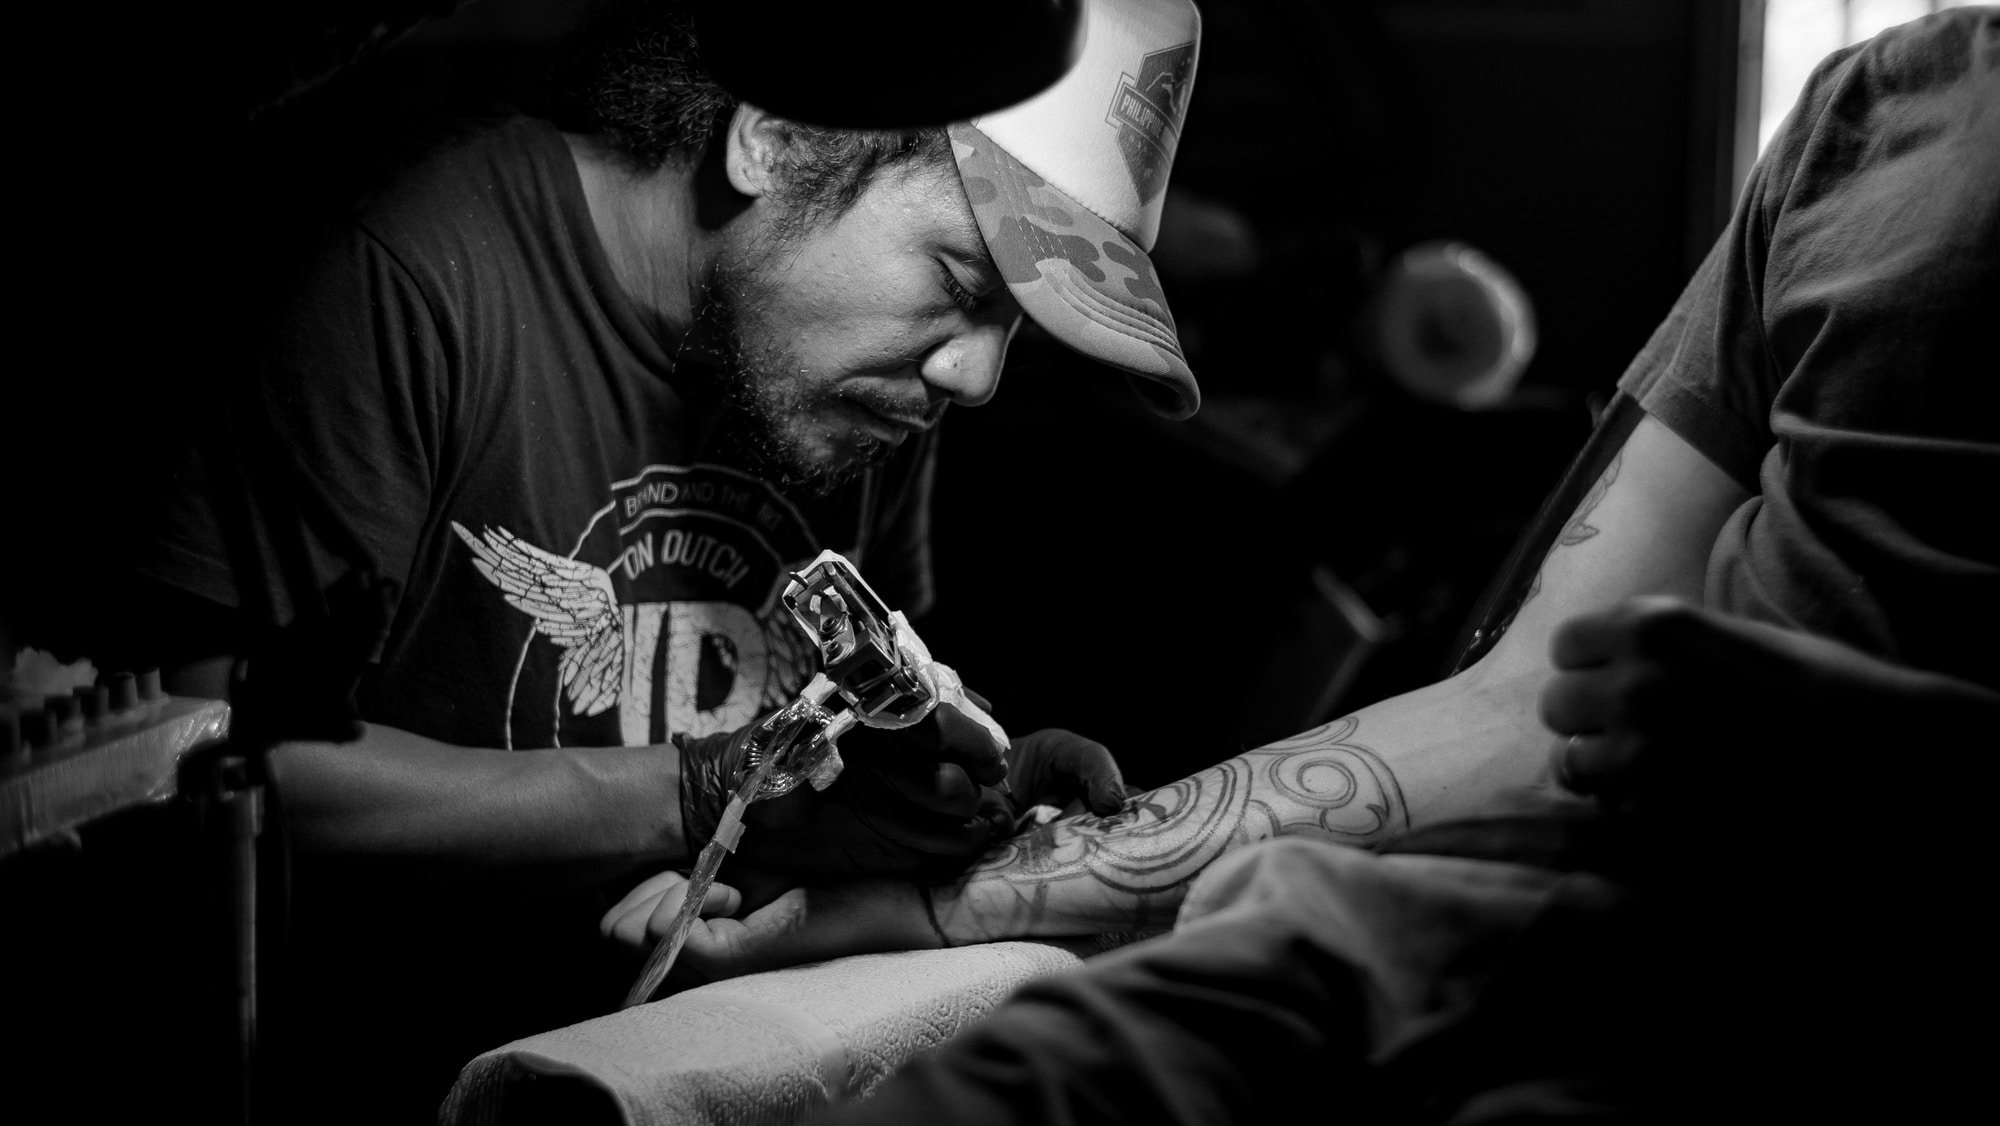 Chemicals: EU takes action for safer tattooing inks and permanent make-up